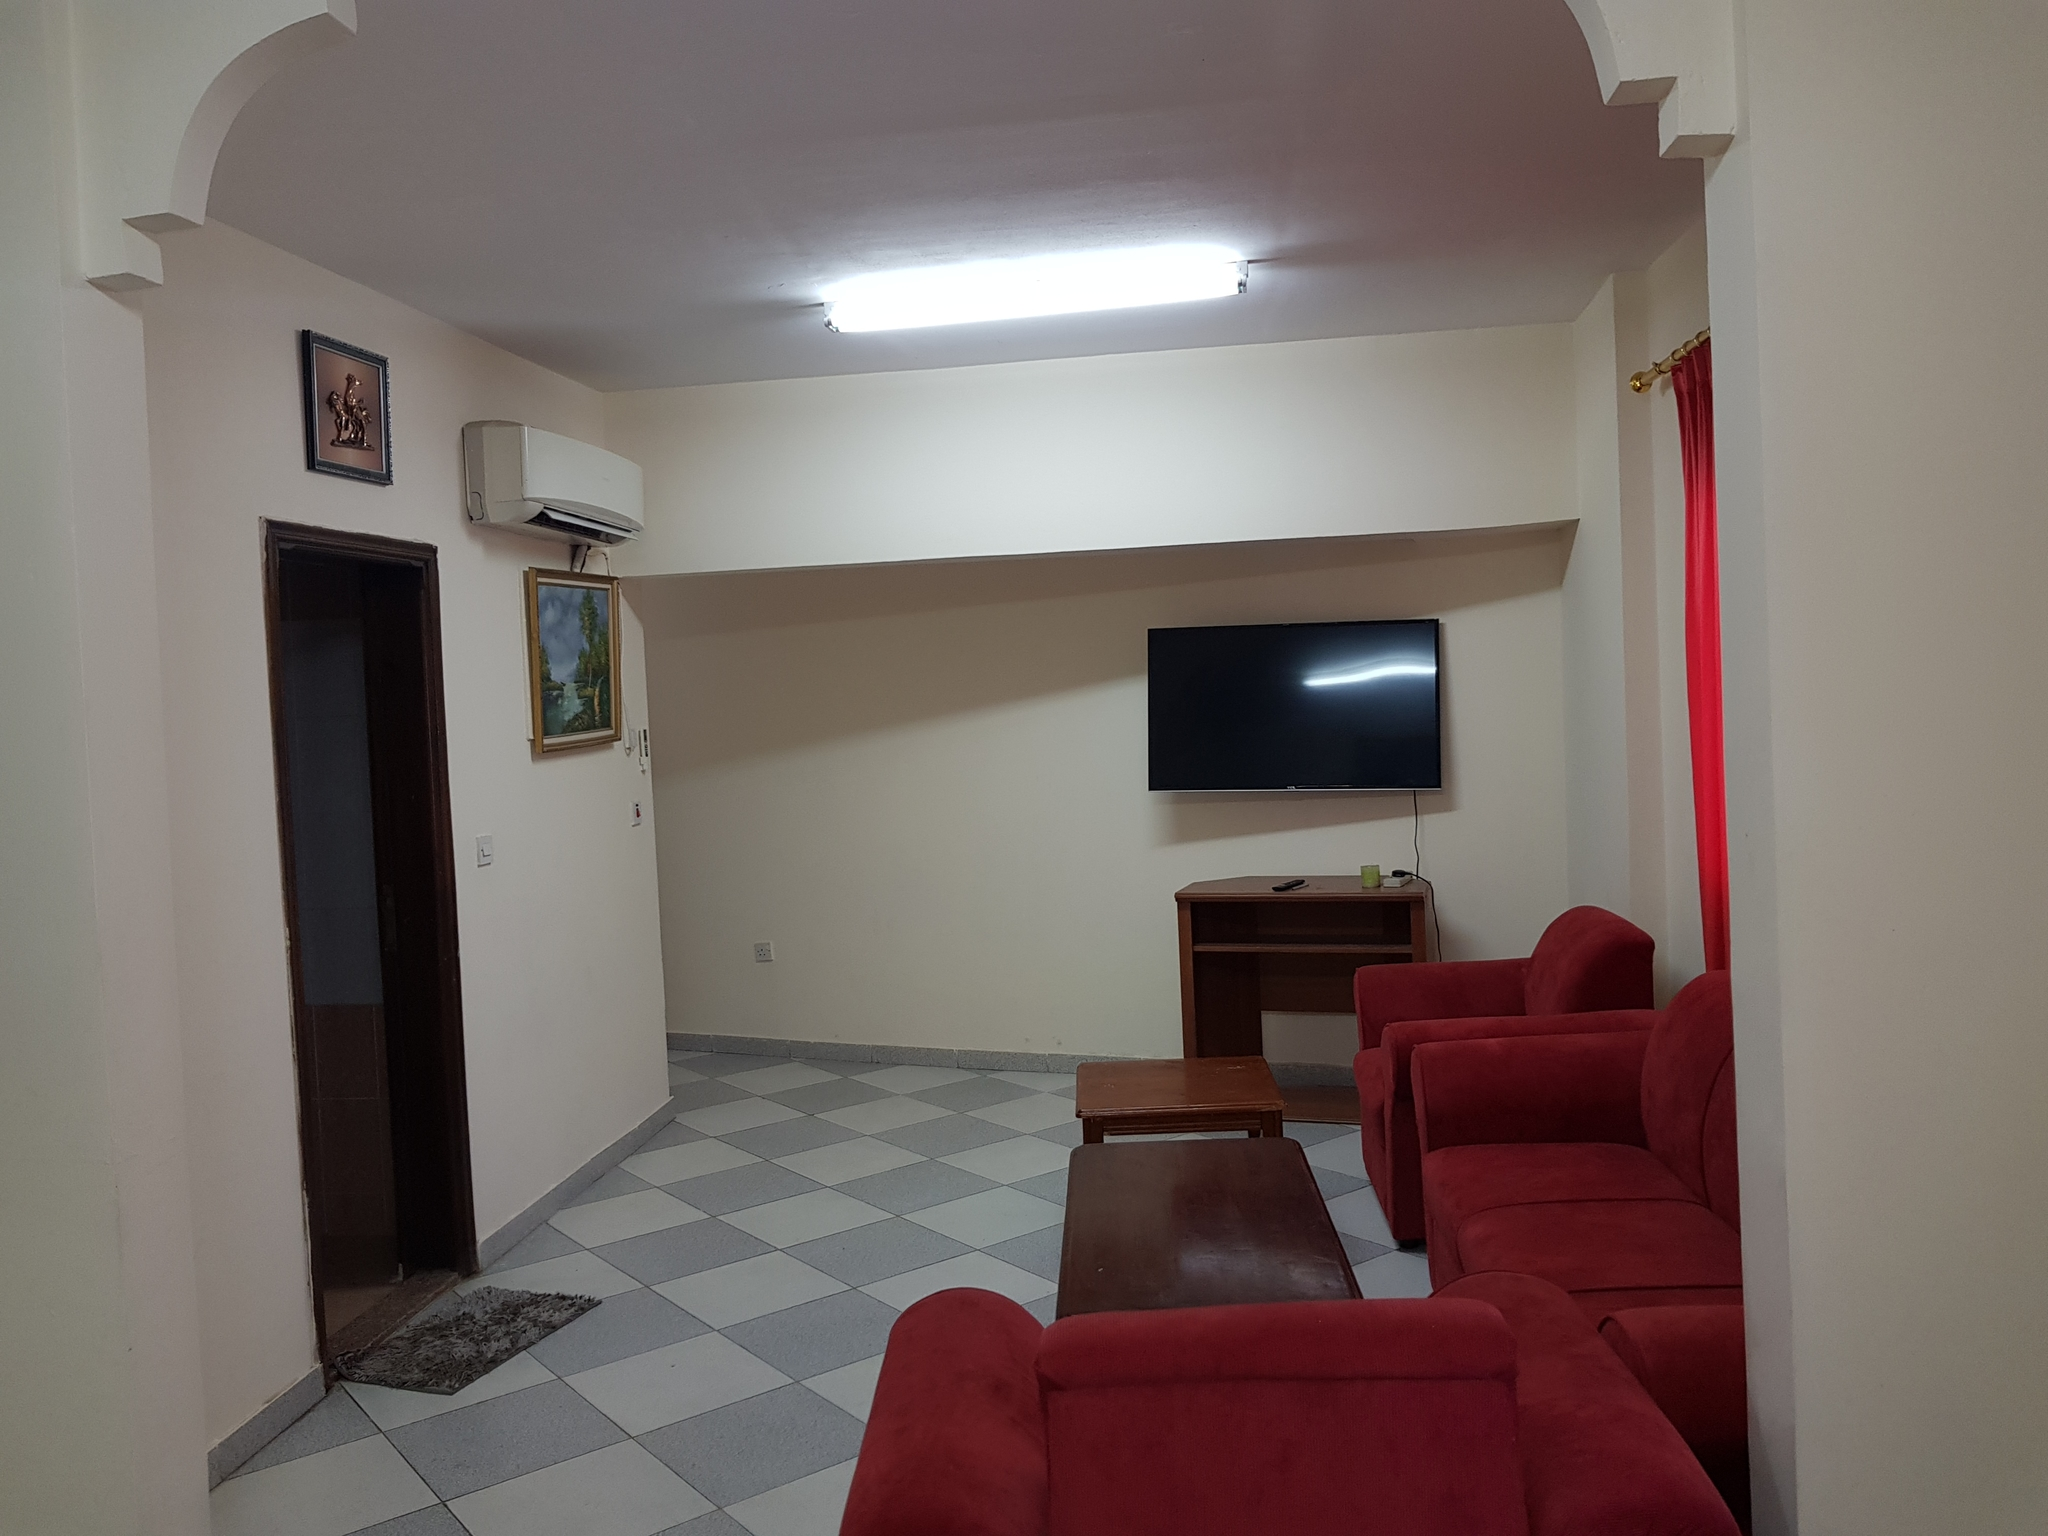 Fully furnished apartment 2bhk at mushirb شقق مفروشه غرفتين بمشيرب